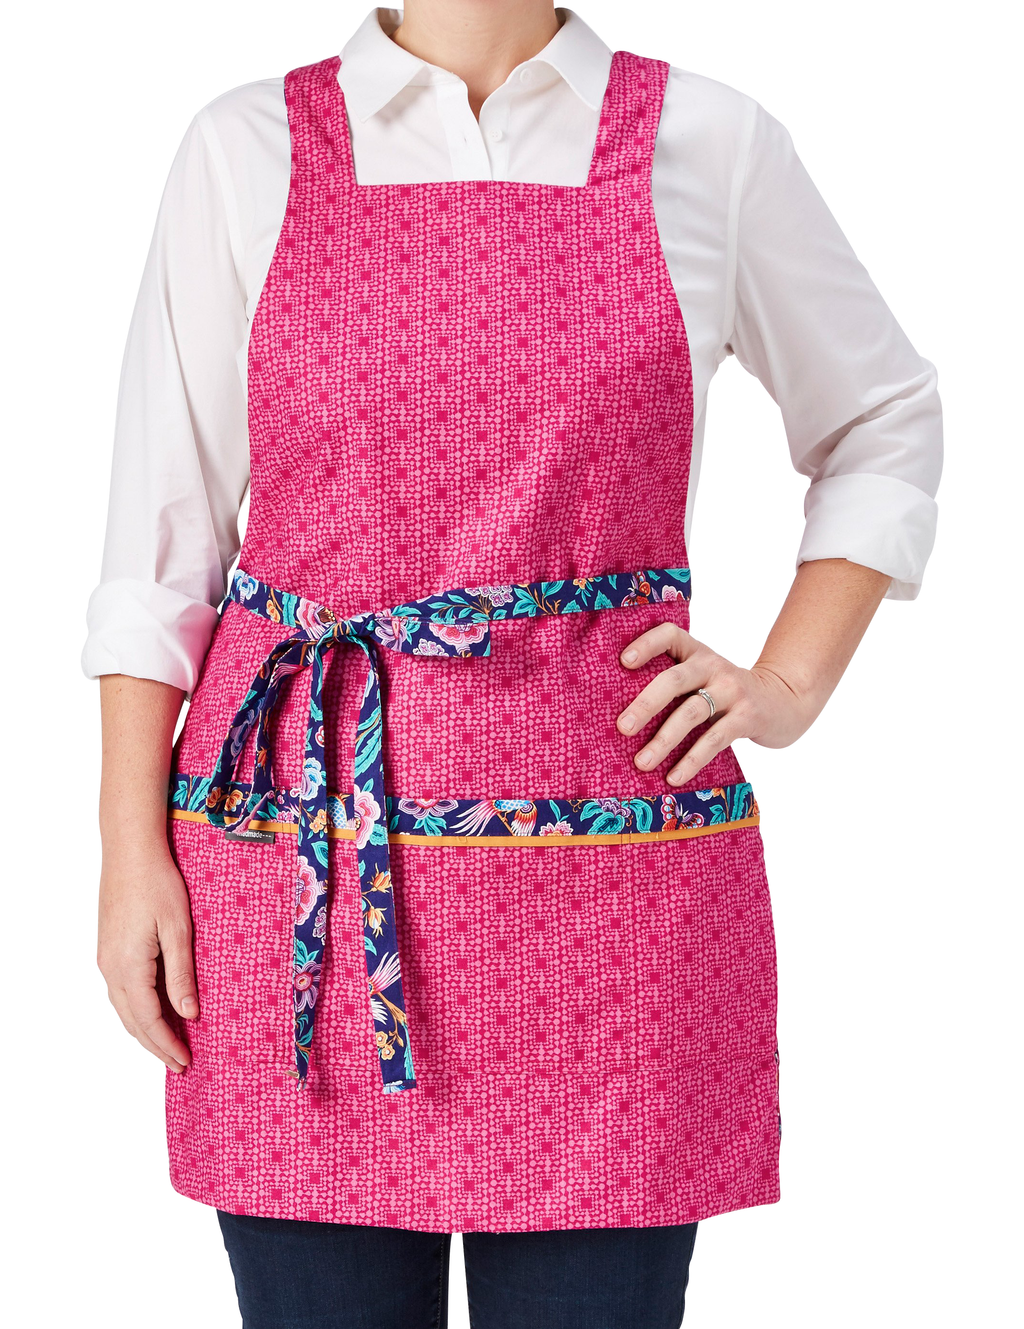 A pretty fashion apron in a birds and flowers print in bright blue and hot pink reversing to a pink geo print, hot pink geo print side, front view.